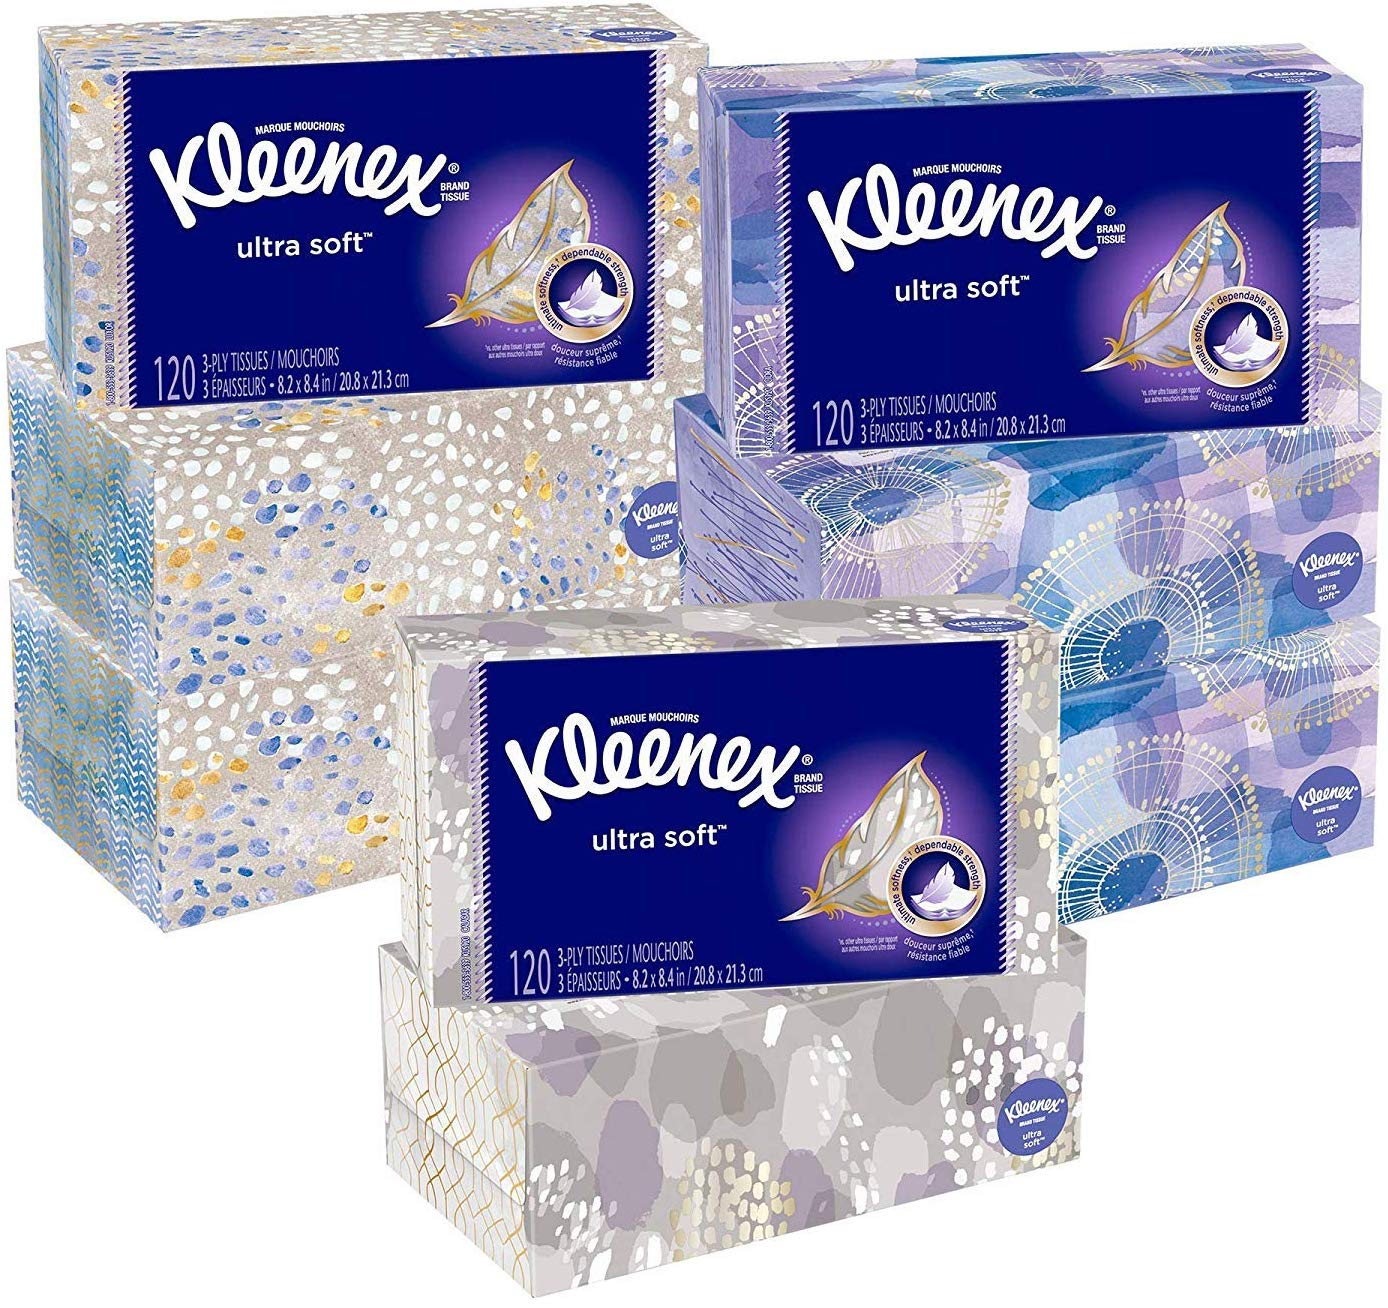 Kleenex Ultra Soft Facial Tissues, 8 Flat Boxes, 120 Tissues per Box (960 Tissues Total)